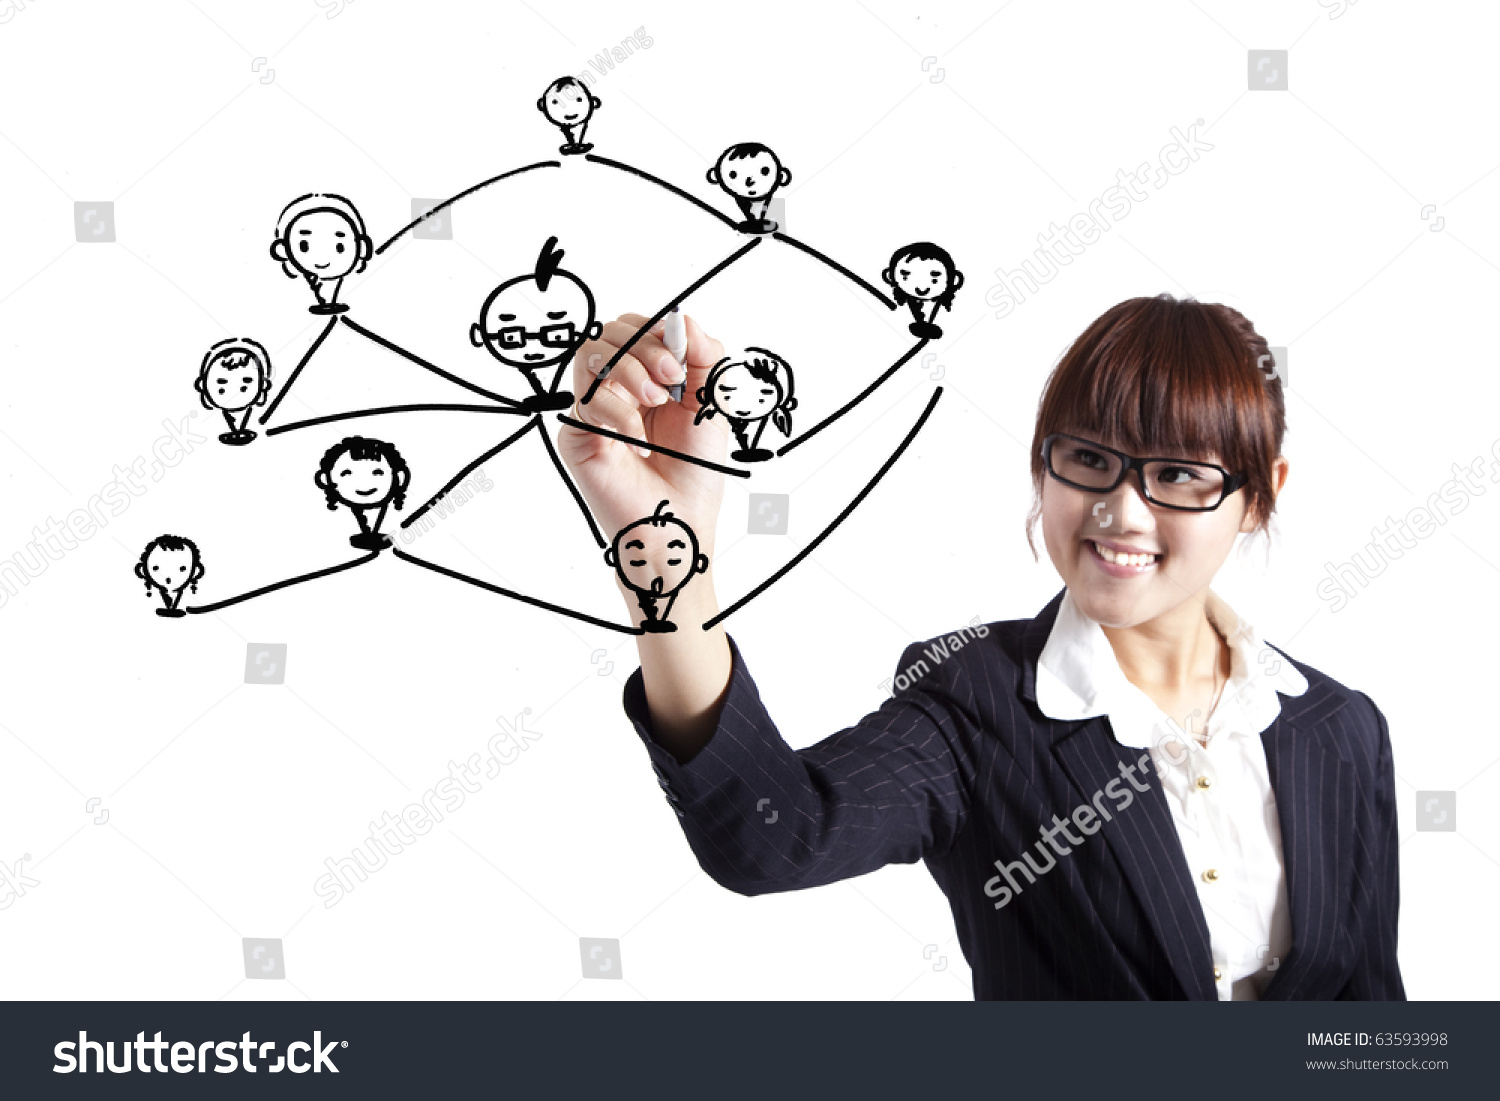 Business Woman Drawing Social Network Relationship Diagram Stock